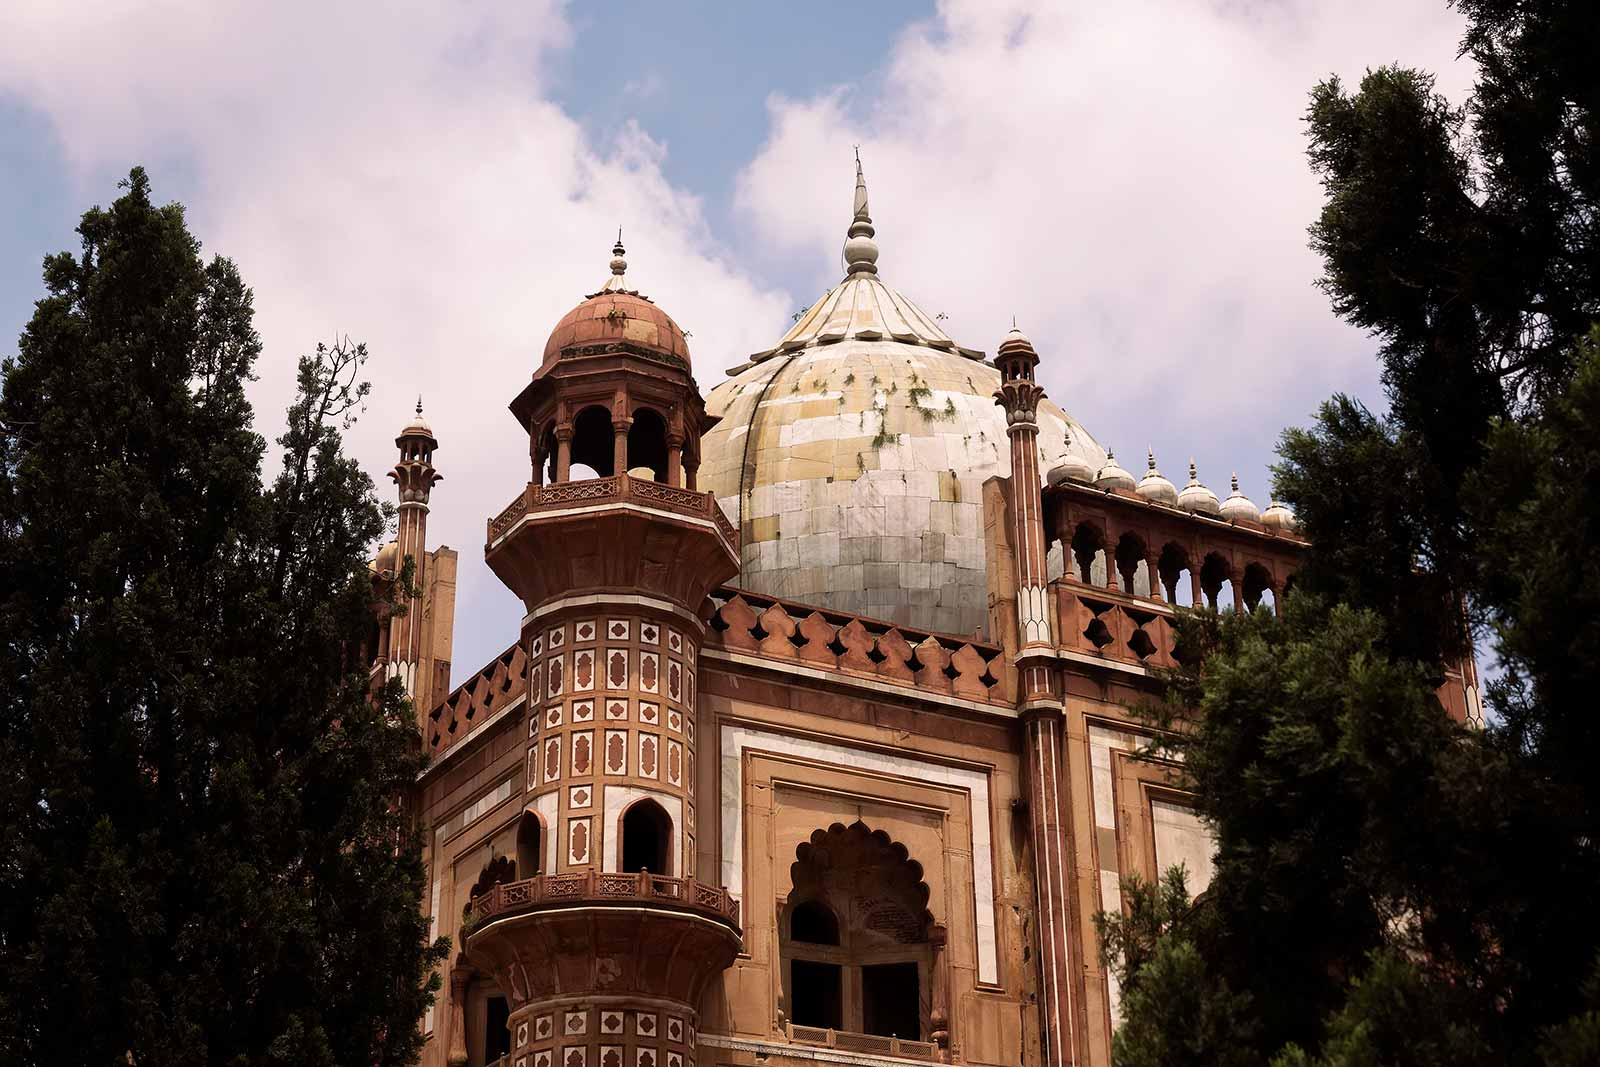 Apart from one or the other Indian couple, Safdarjung's Tomb is not a major tourist attraction, which makes it the perfect place to spend some time away from noisy and busy central Delhi.